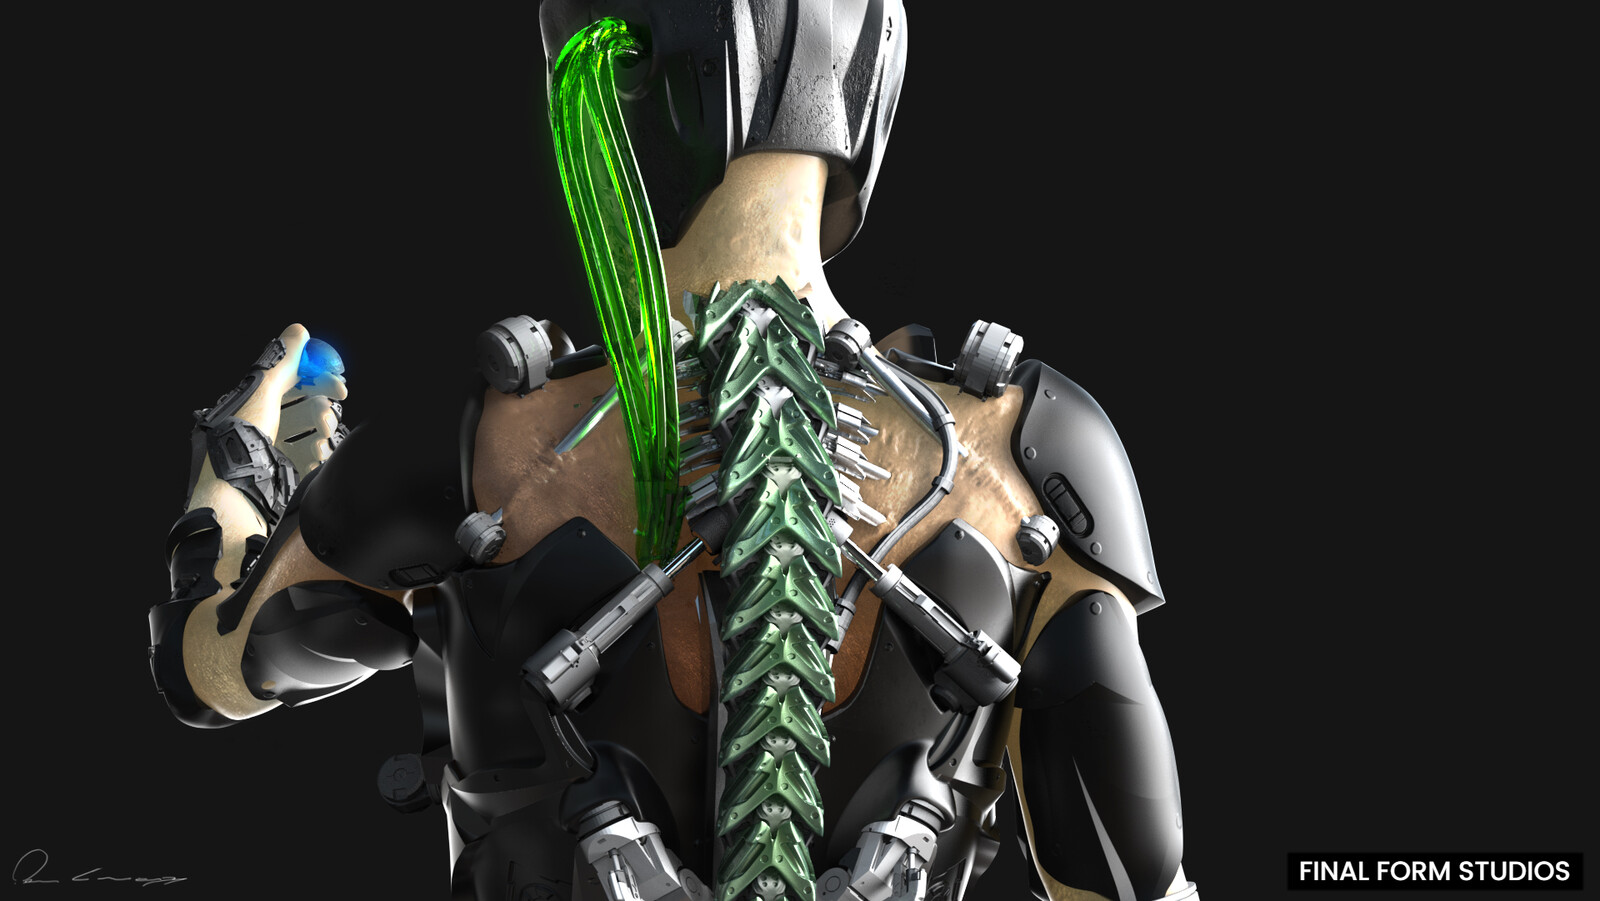 The exo thoracic spine is basically a strong cage, designed to protect the vital organs of the heart and lungs. This exosuit was built with 10 vertebral bodies in the upper back make up the thoracic spine. The firm attachment of the rib cage at each level